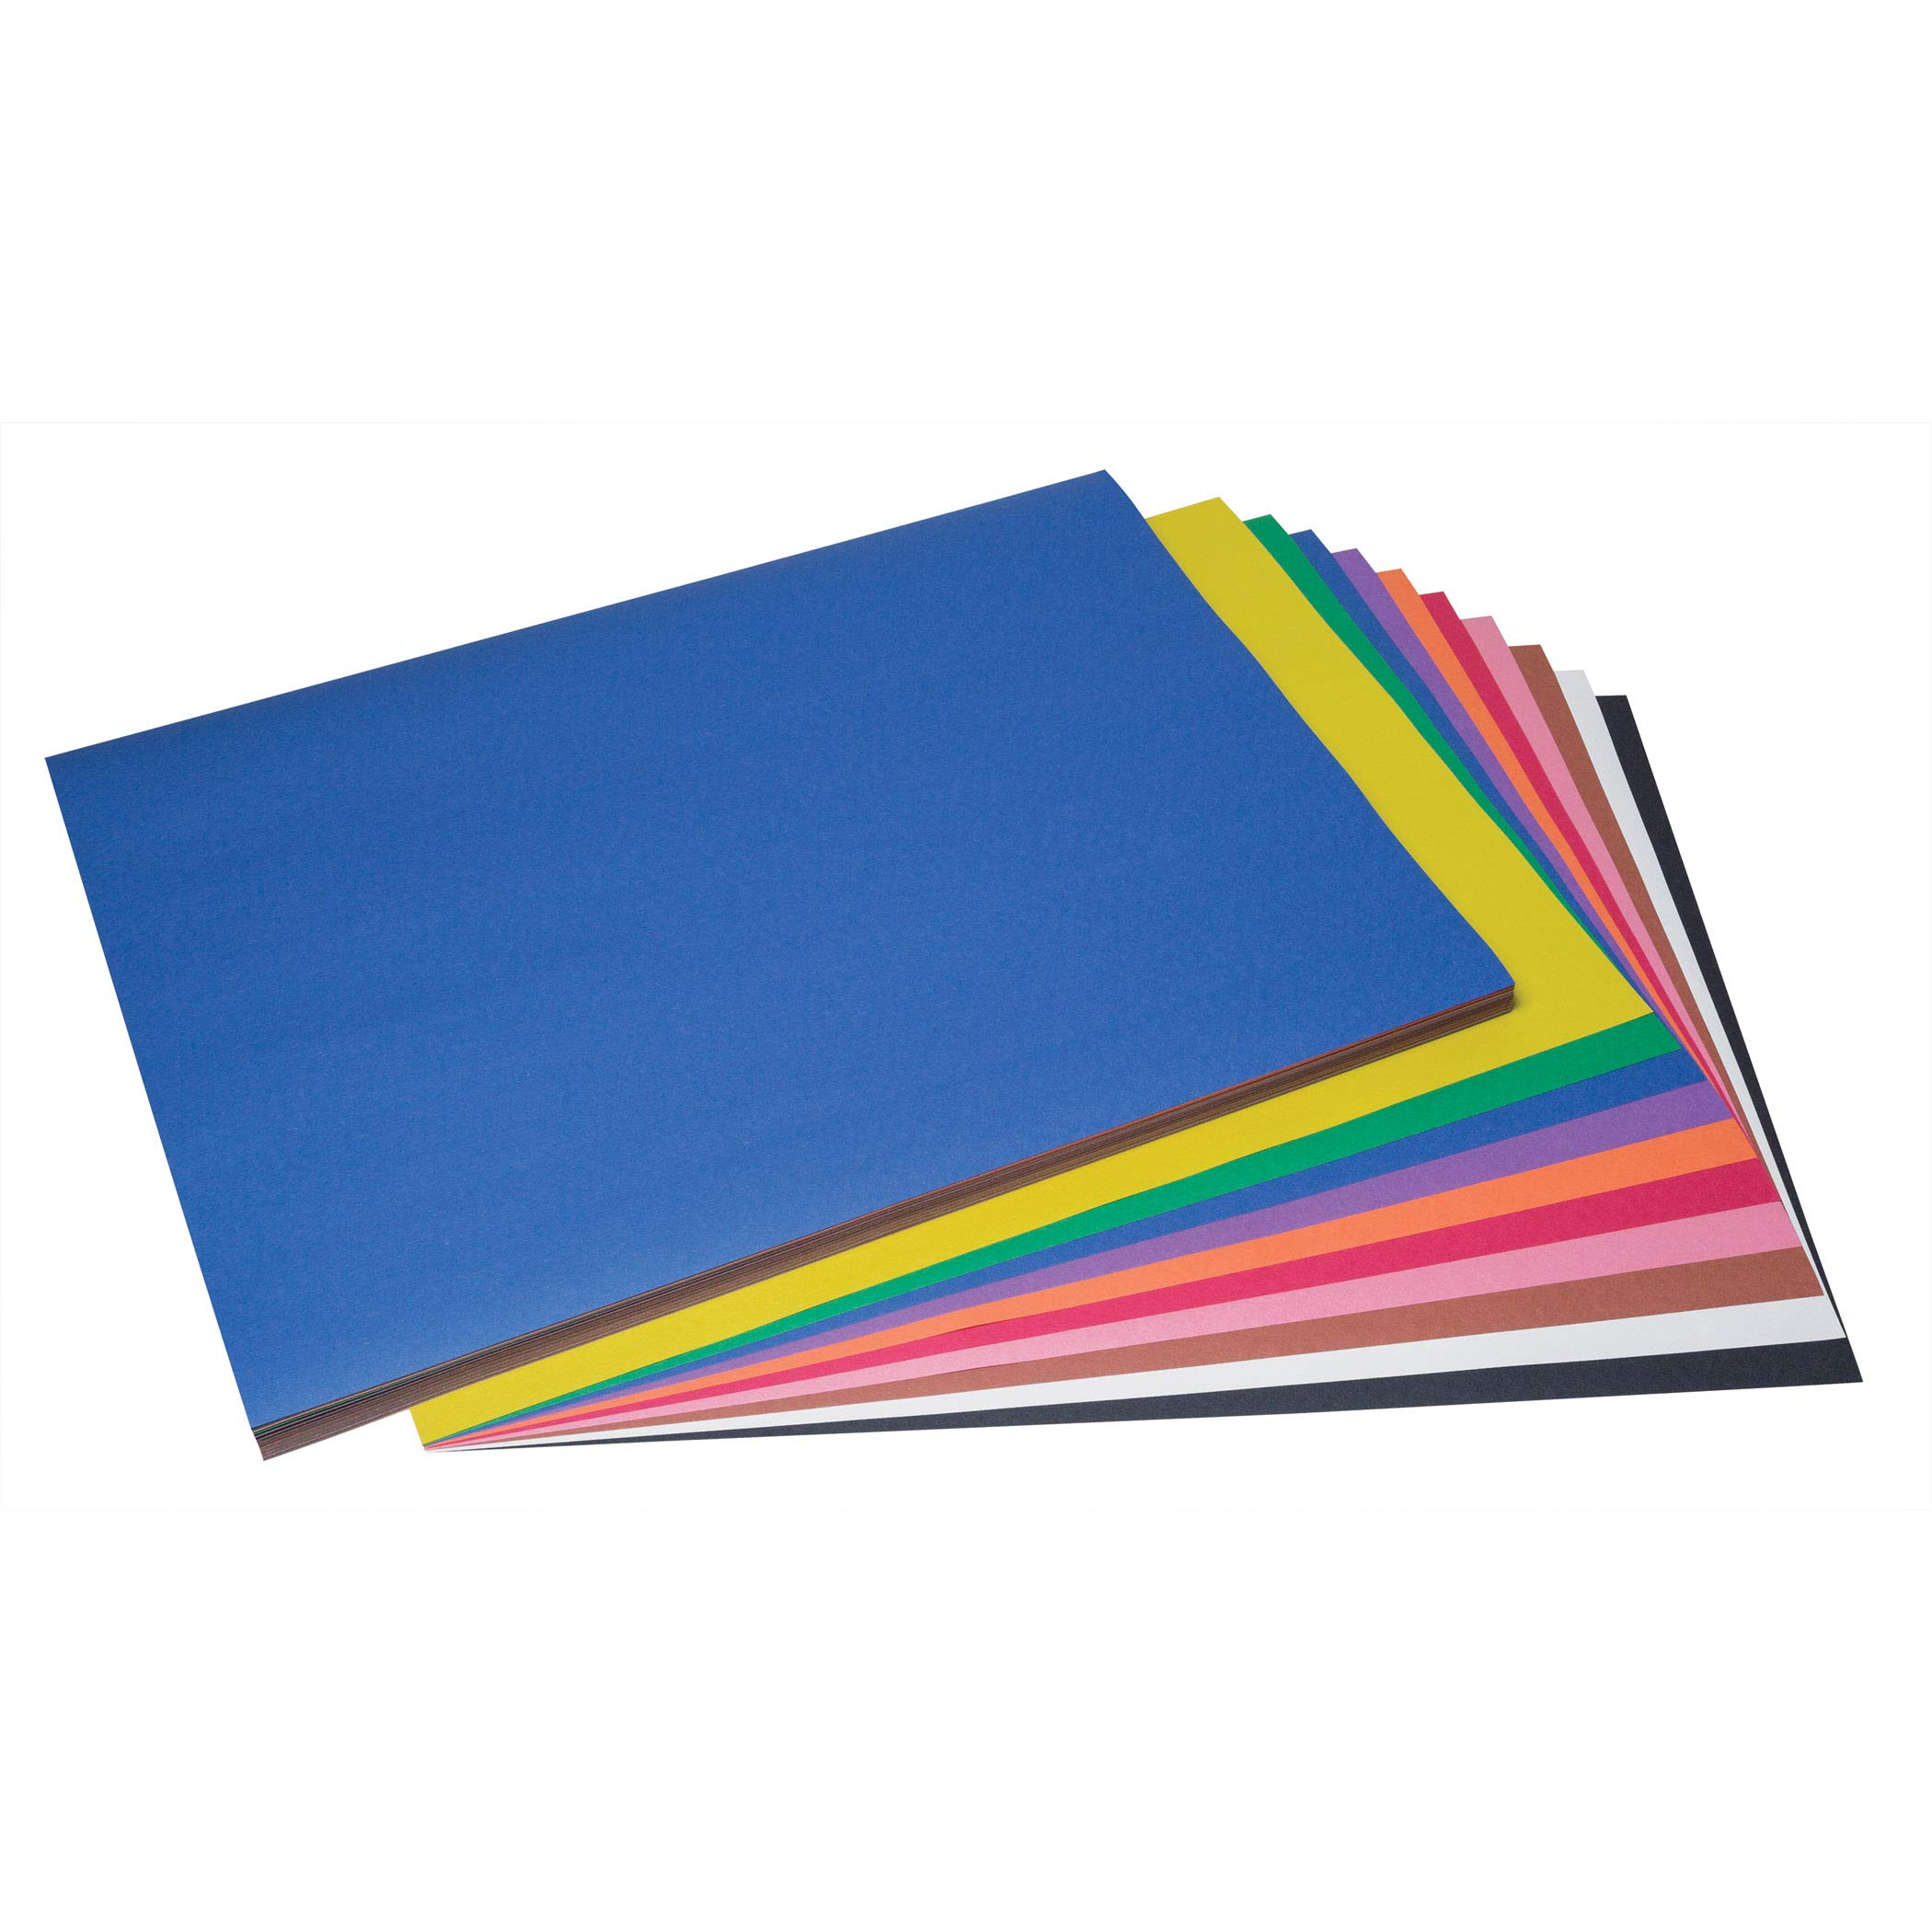 SunWorks PAC6518 Construction Paper, 10 Assorted Colors, 18'' x 24'', 100 Sheets